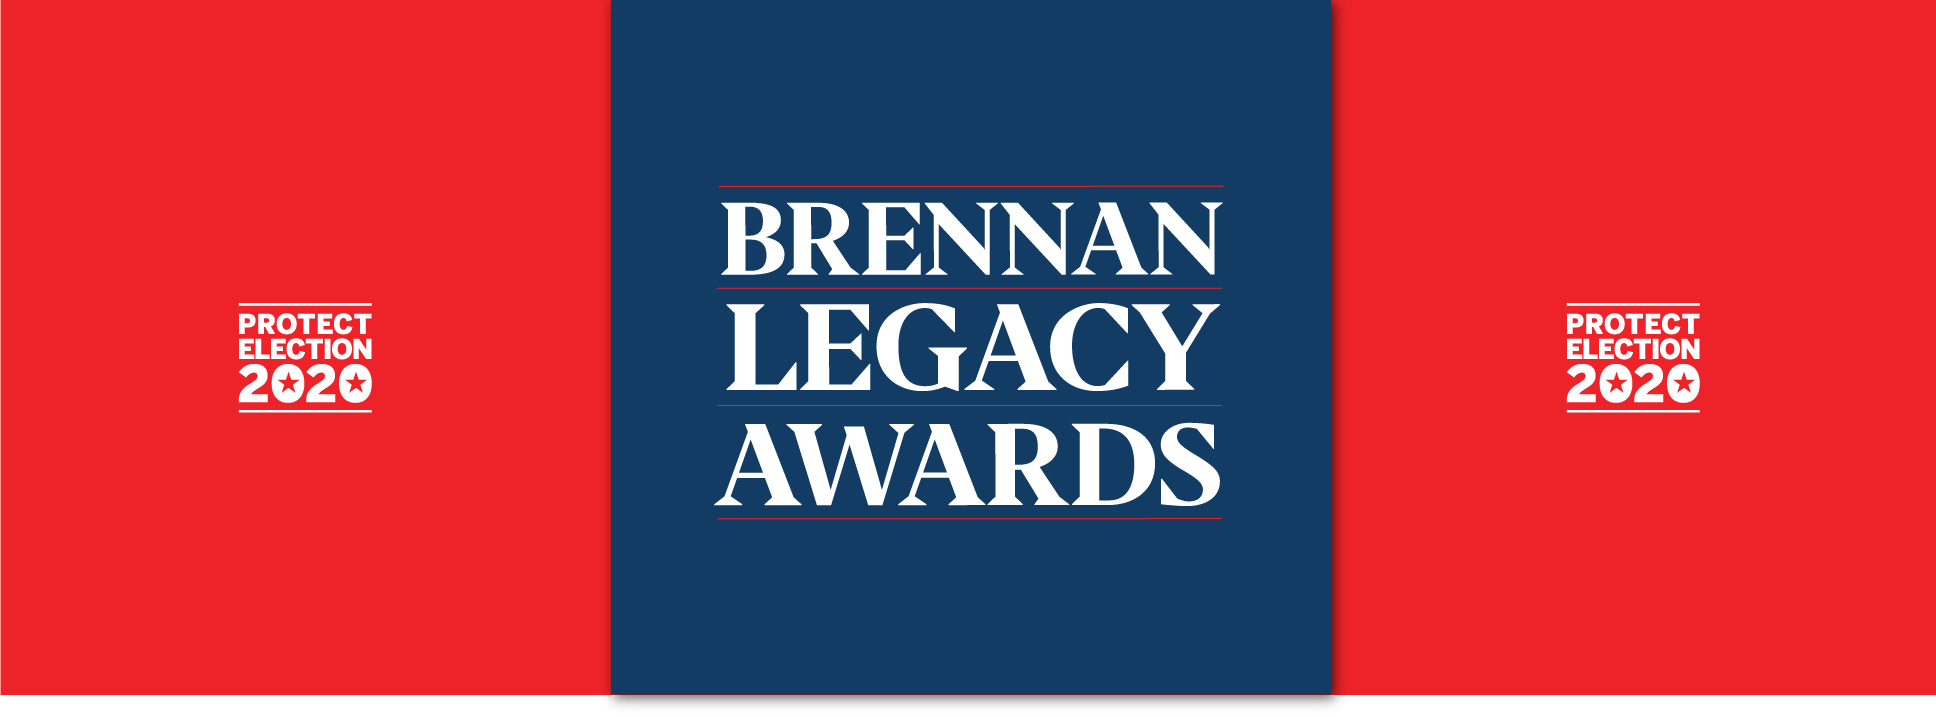 Brennan Legacy Awards